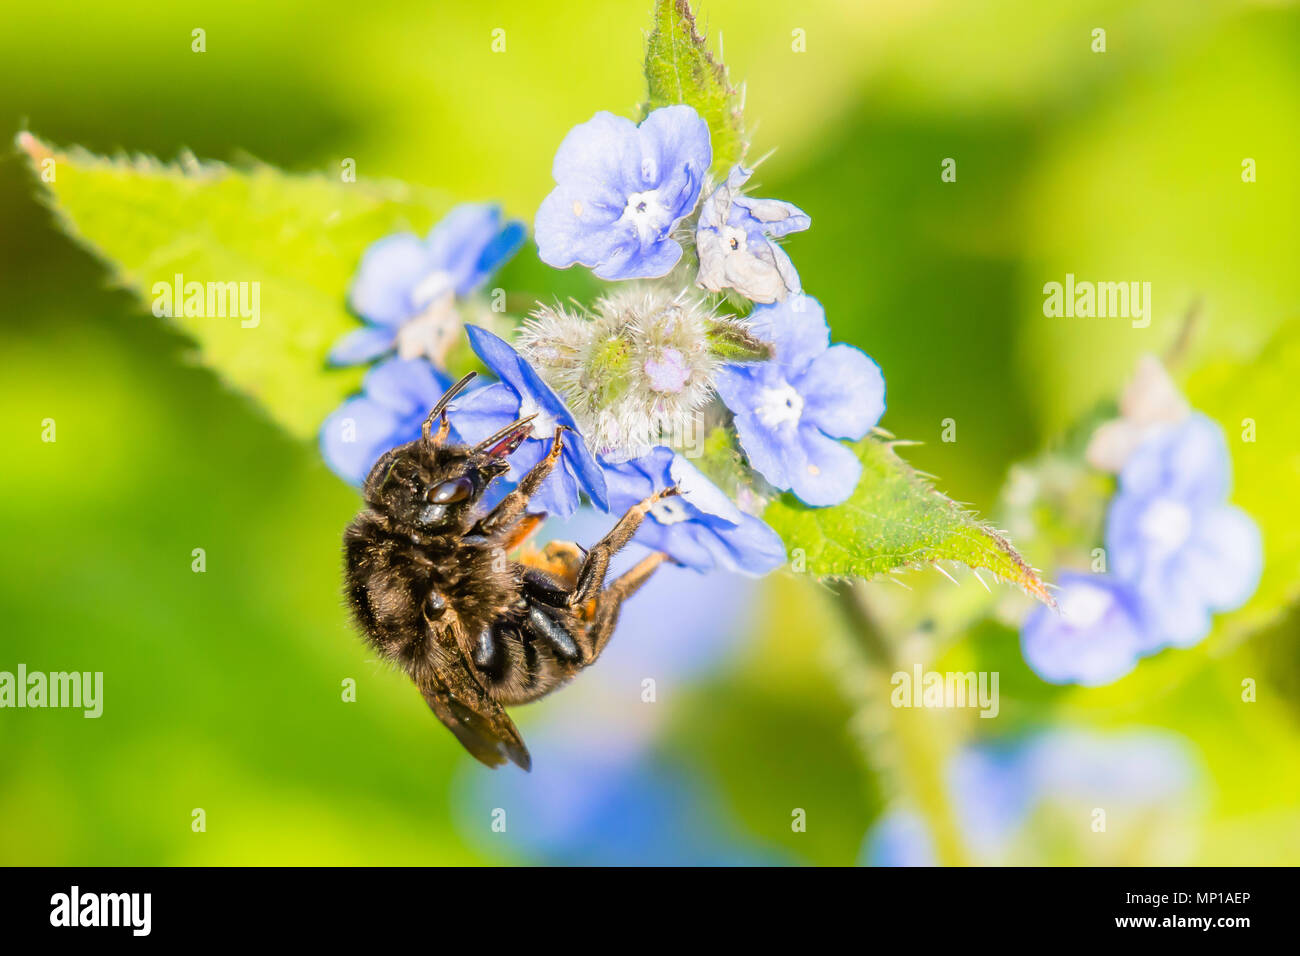 Honey bee collecting nectar from forget me not flowers on british meadow in spring.Stunning wildlife uk.Natural world conservation.Nature Uk. - Stock Image